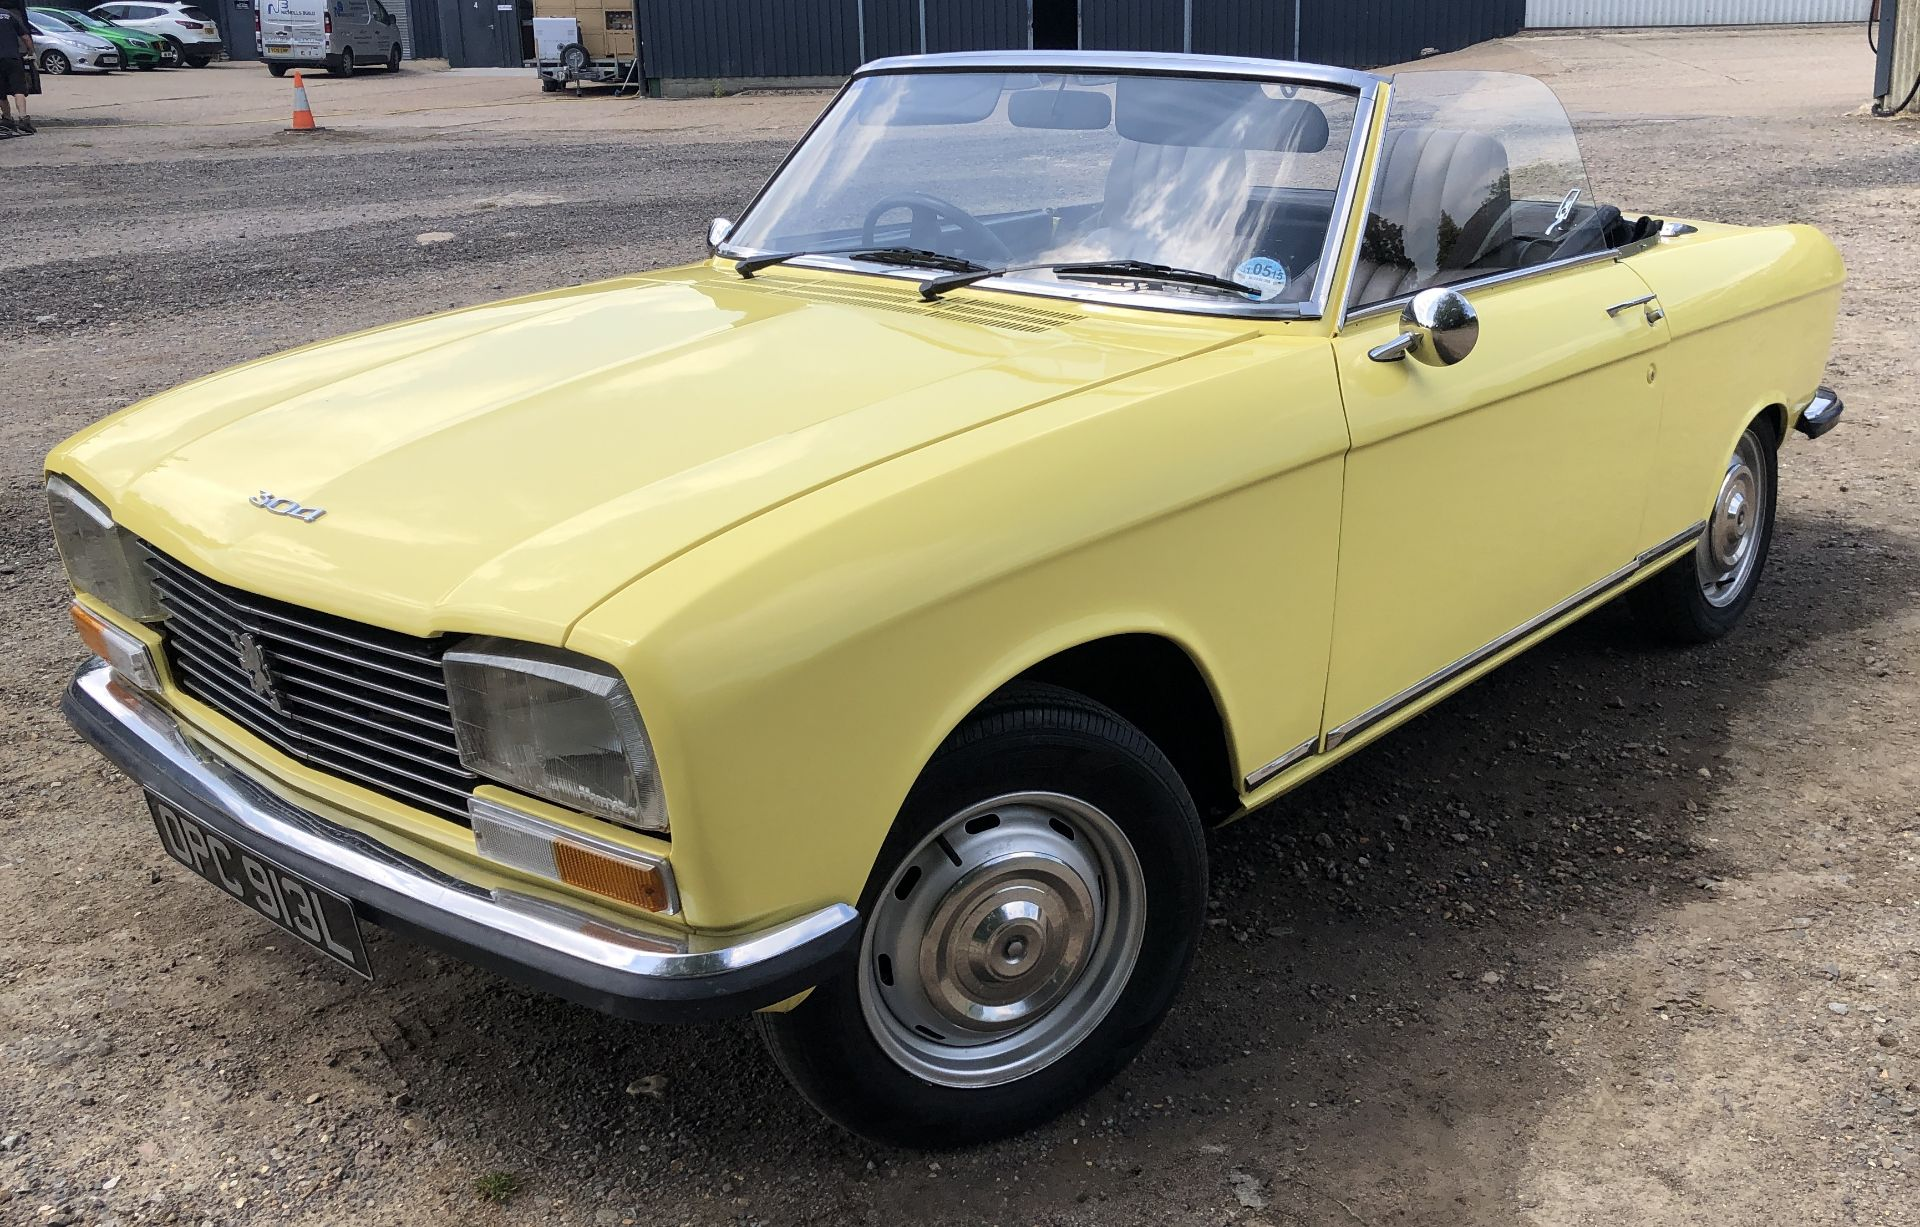 Rare Right Hand Drive Peugeot 304 Convertible, Registration OPC 913L, First Registered 2nd - Image 17 of 48